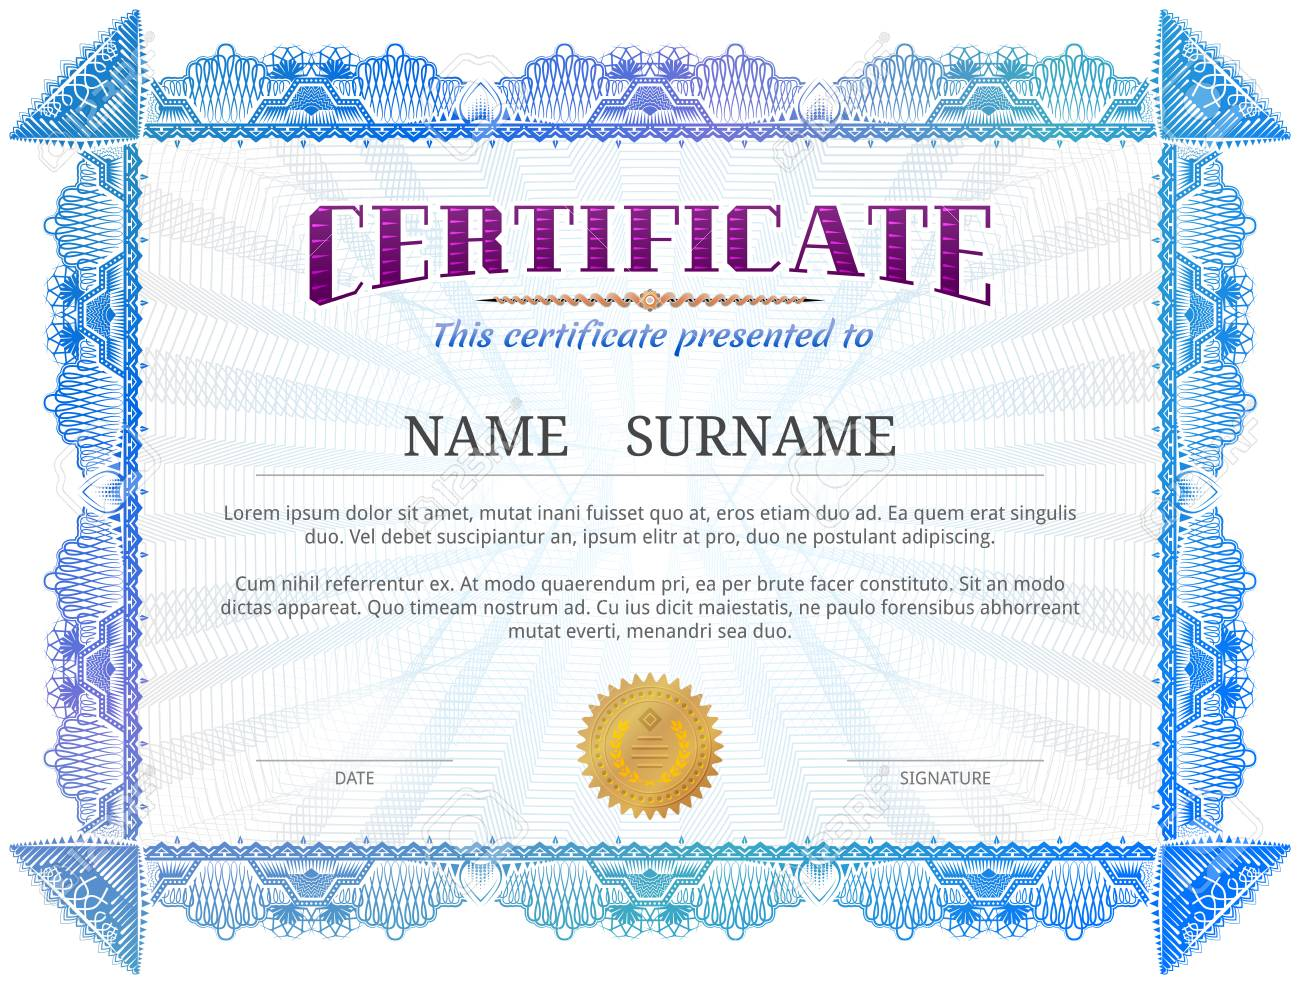 Certificate template with guilloche elements blue diploma border certificate template with guilloche elements blue diploma border design for personal conferment vector image yadclub Gallery